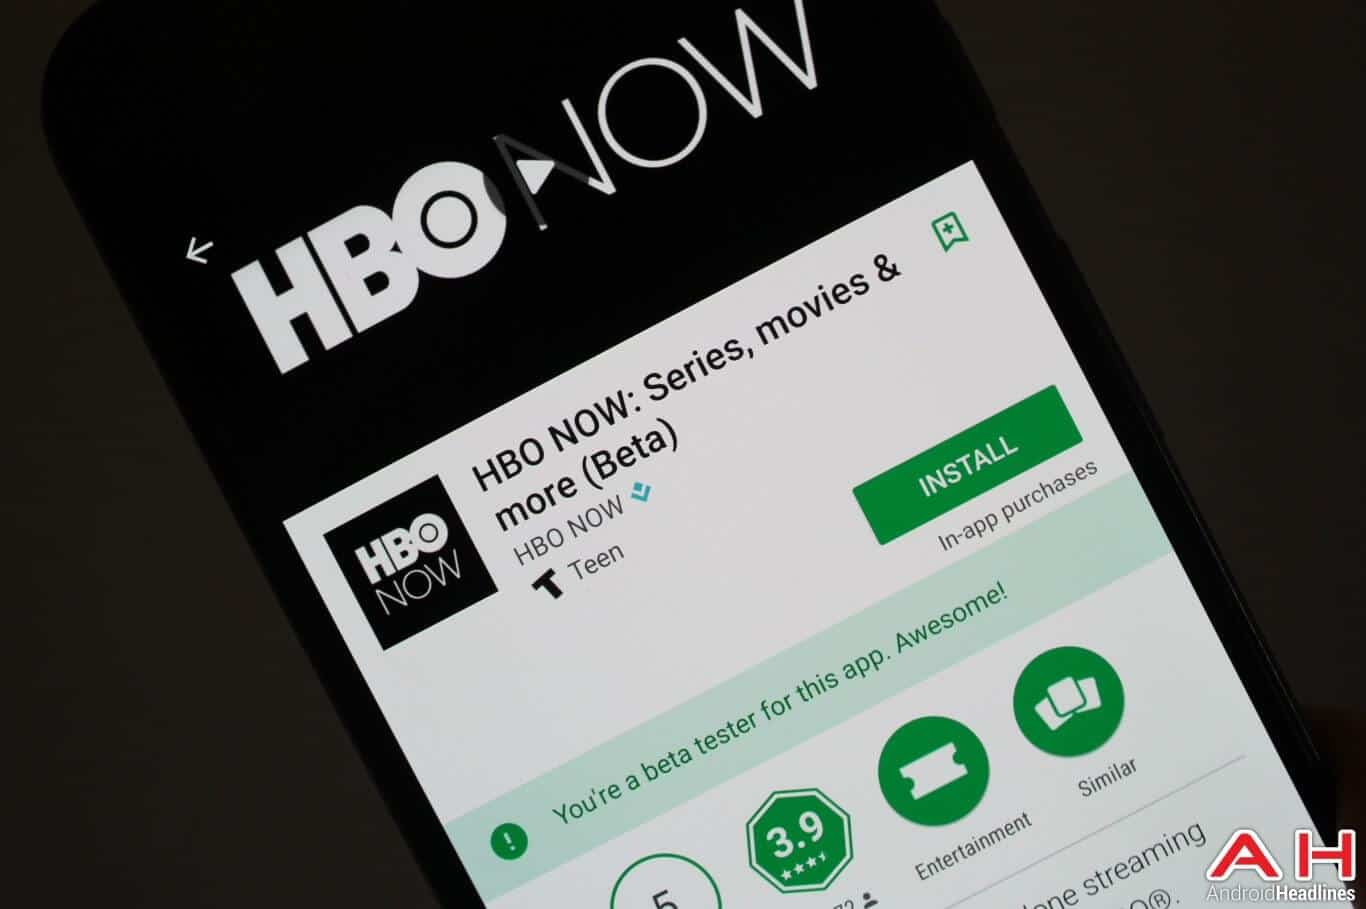 How to Use the HBO Now App to Watch TV Shows Online